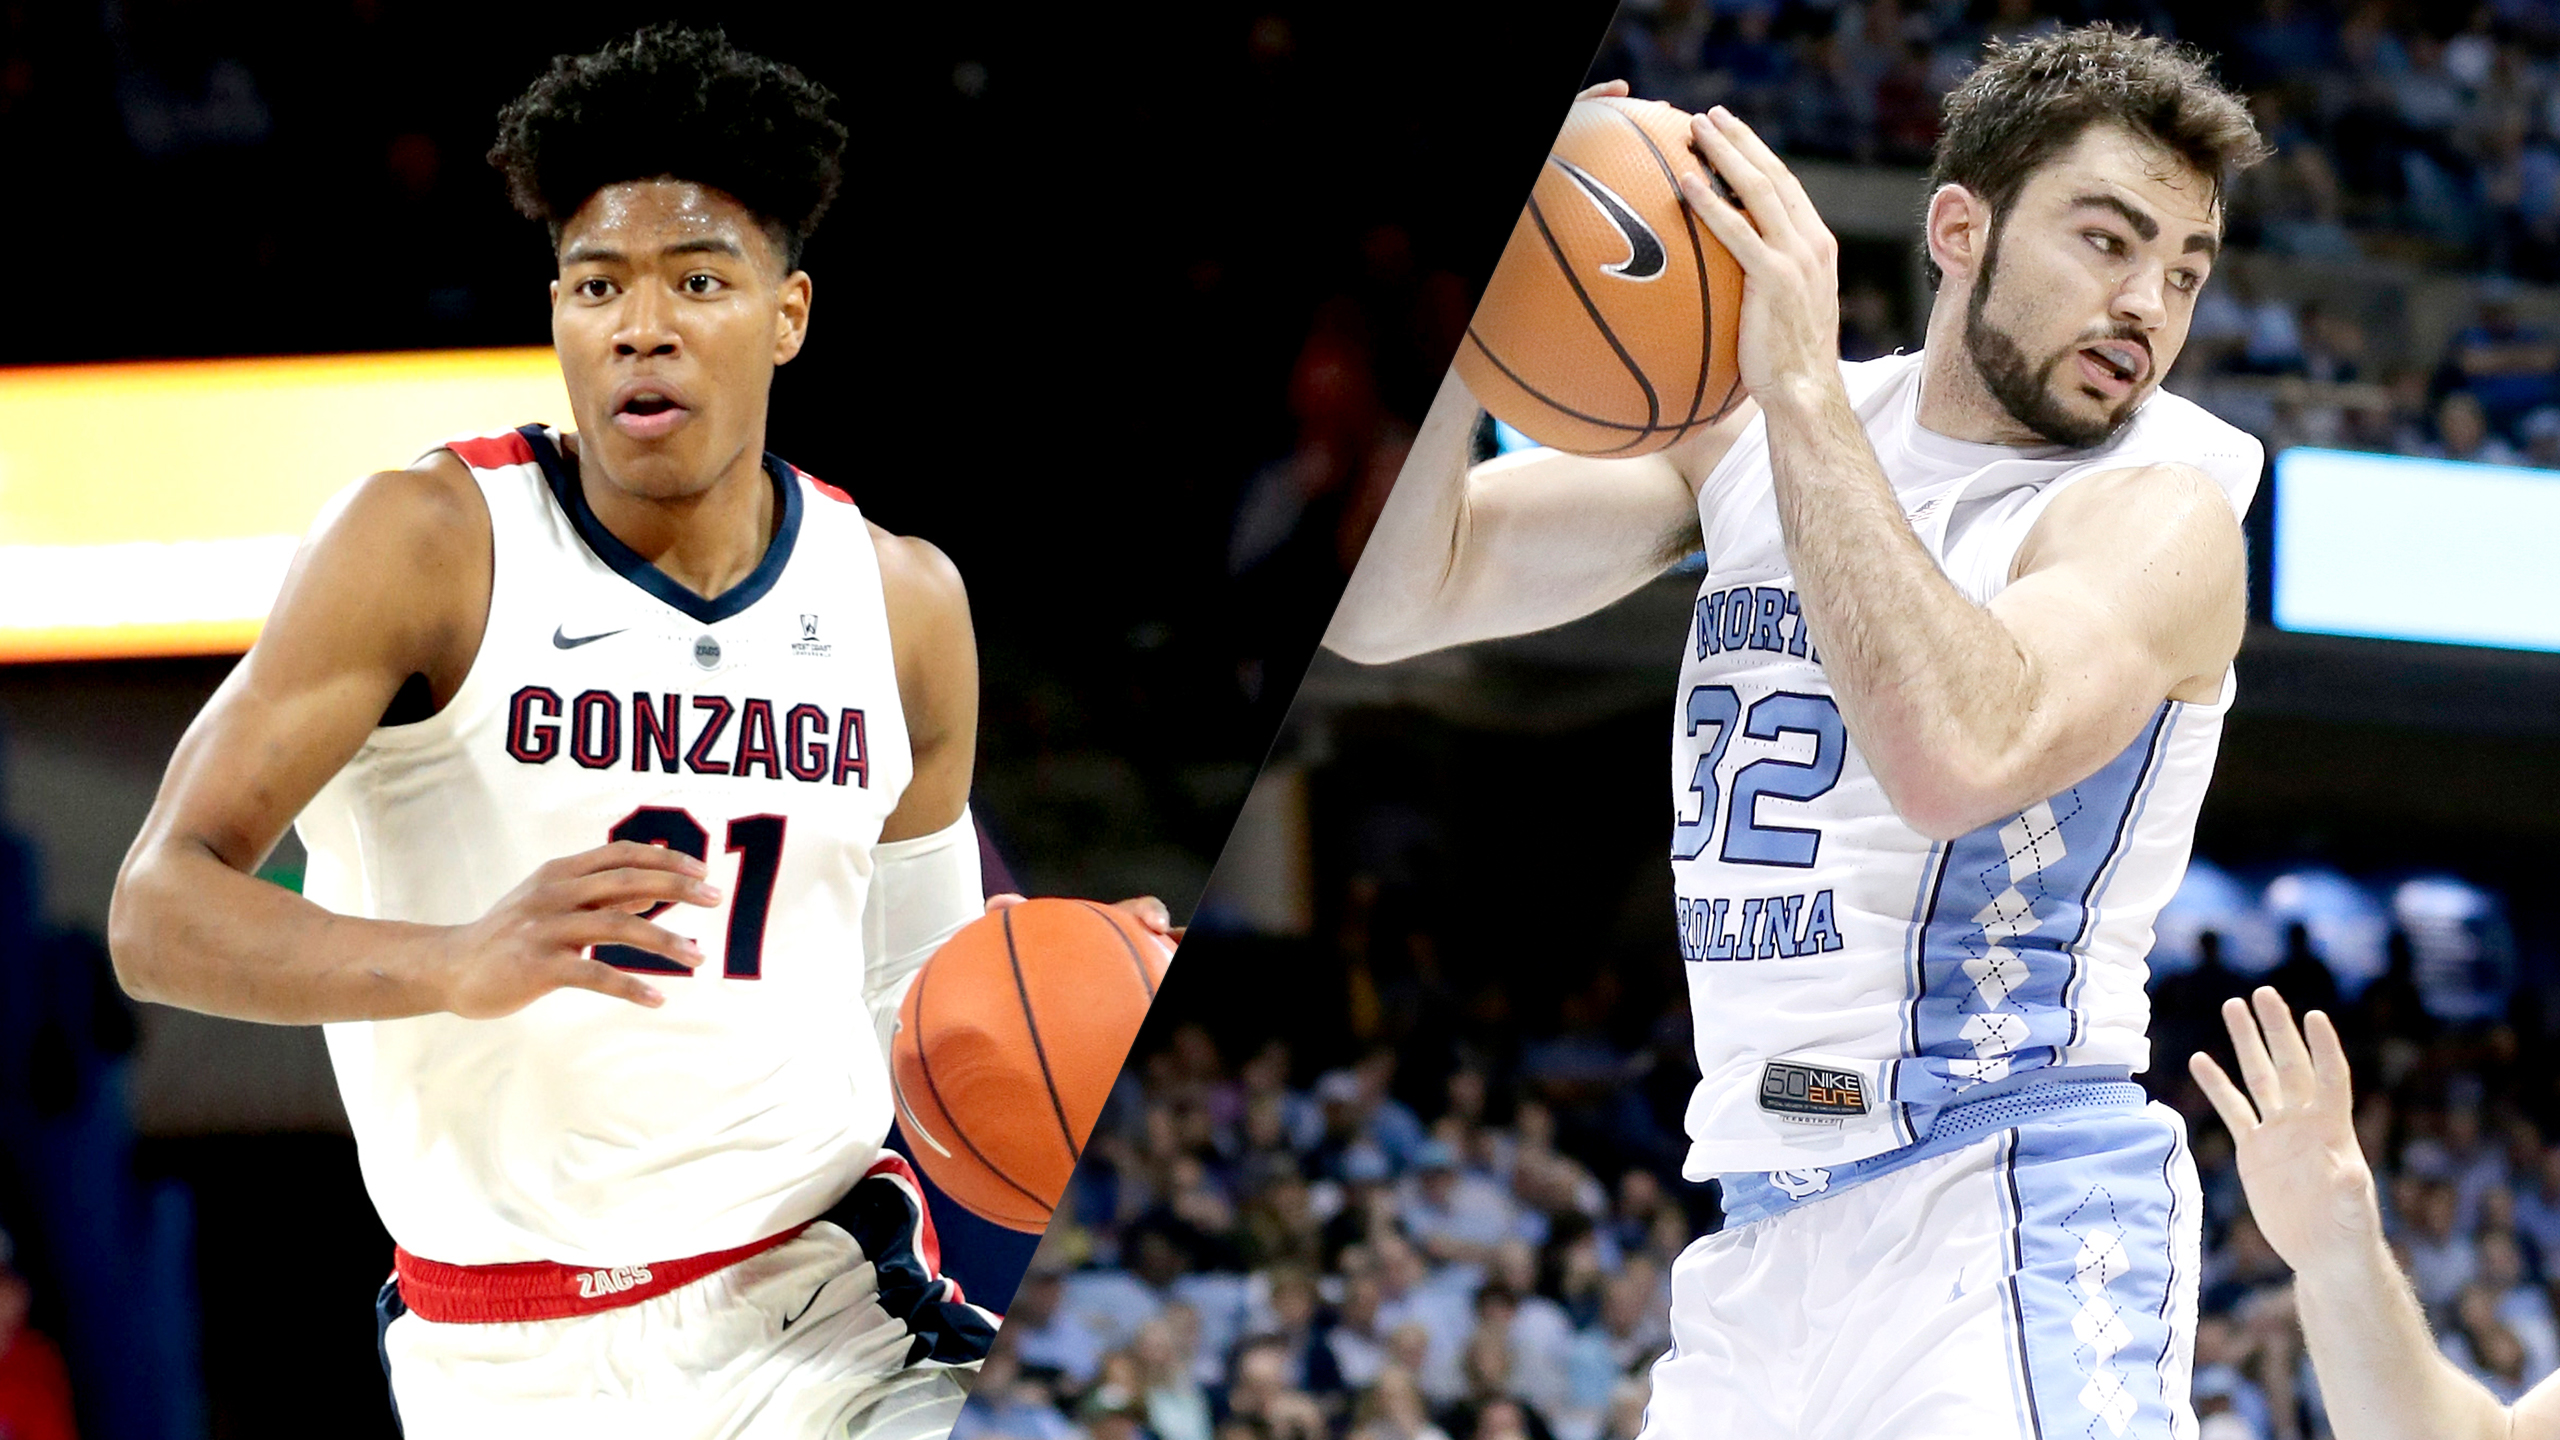 #4 Gonzaga vs. #12 North Carolina (M Basketball) (re-air)